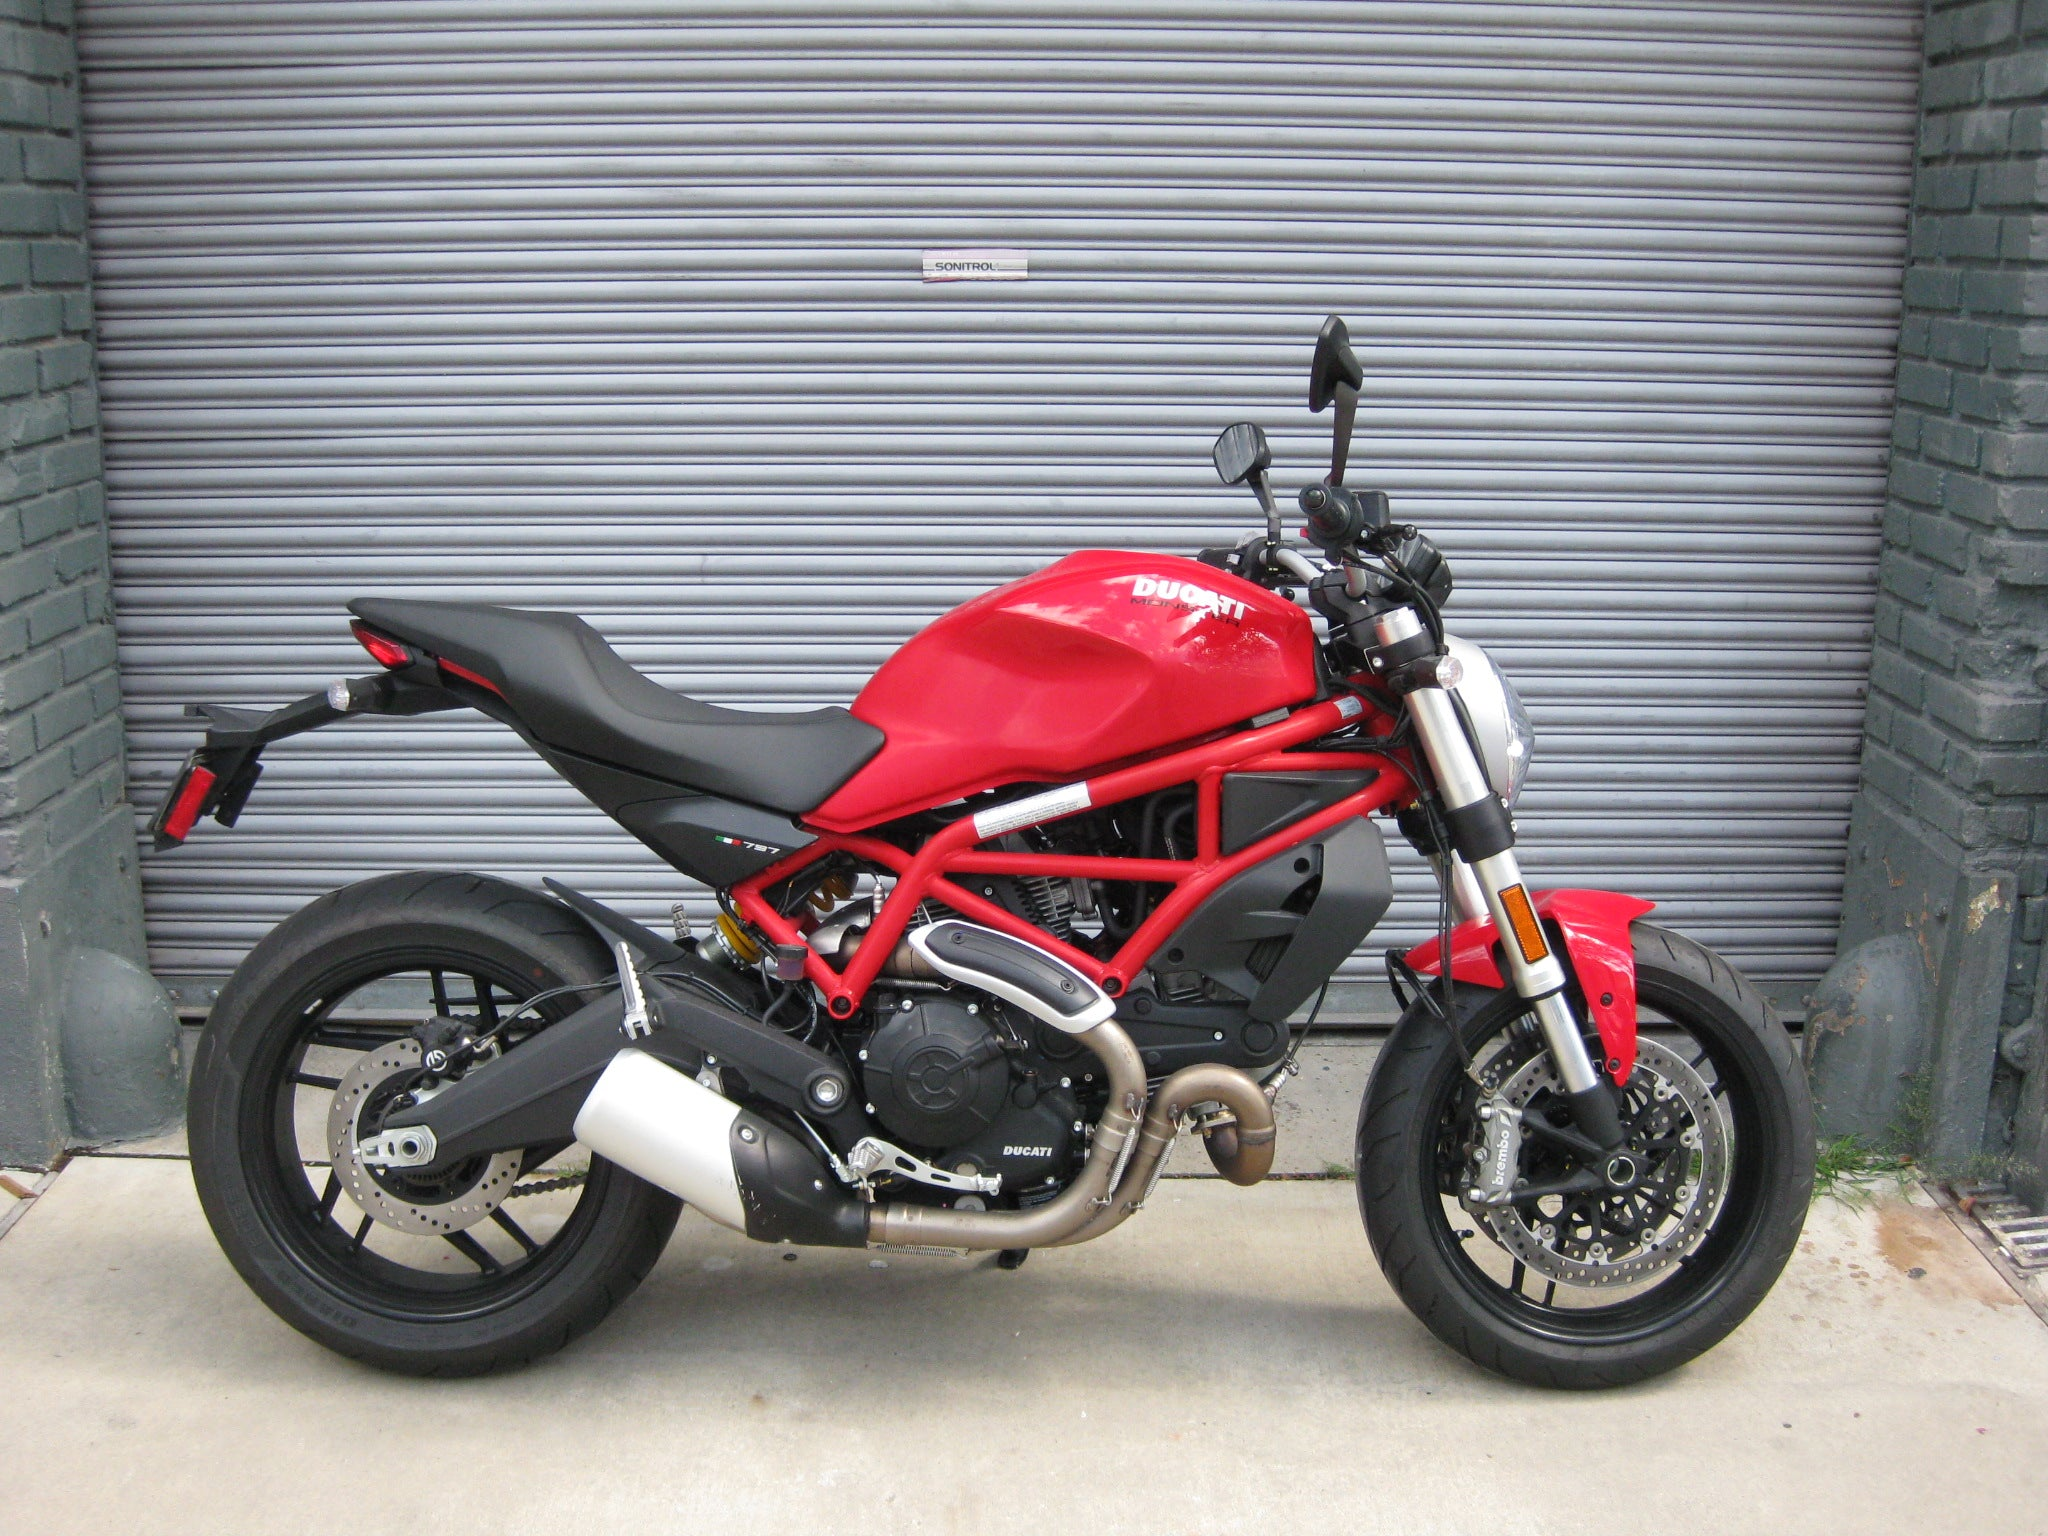 Bmw Pre Owned >> 2017 Ducati Monster 797 - Red DEMO – The Transportation Revolution New Orleans - TTRNO